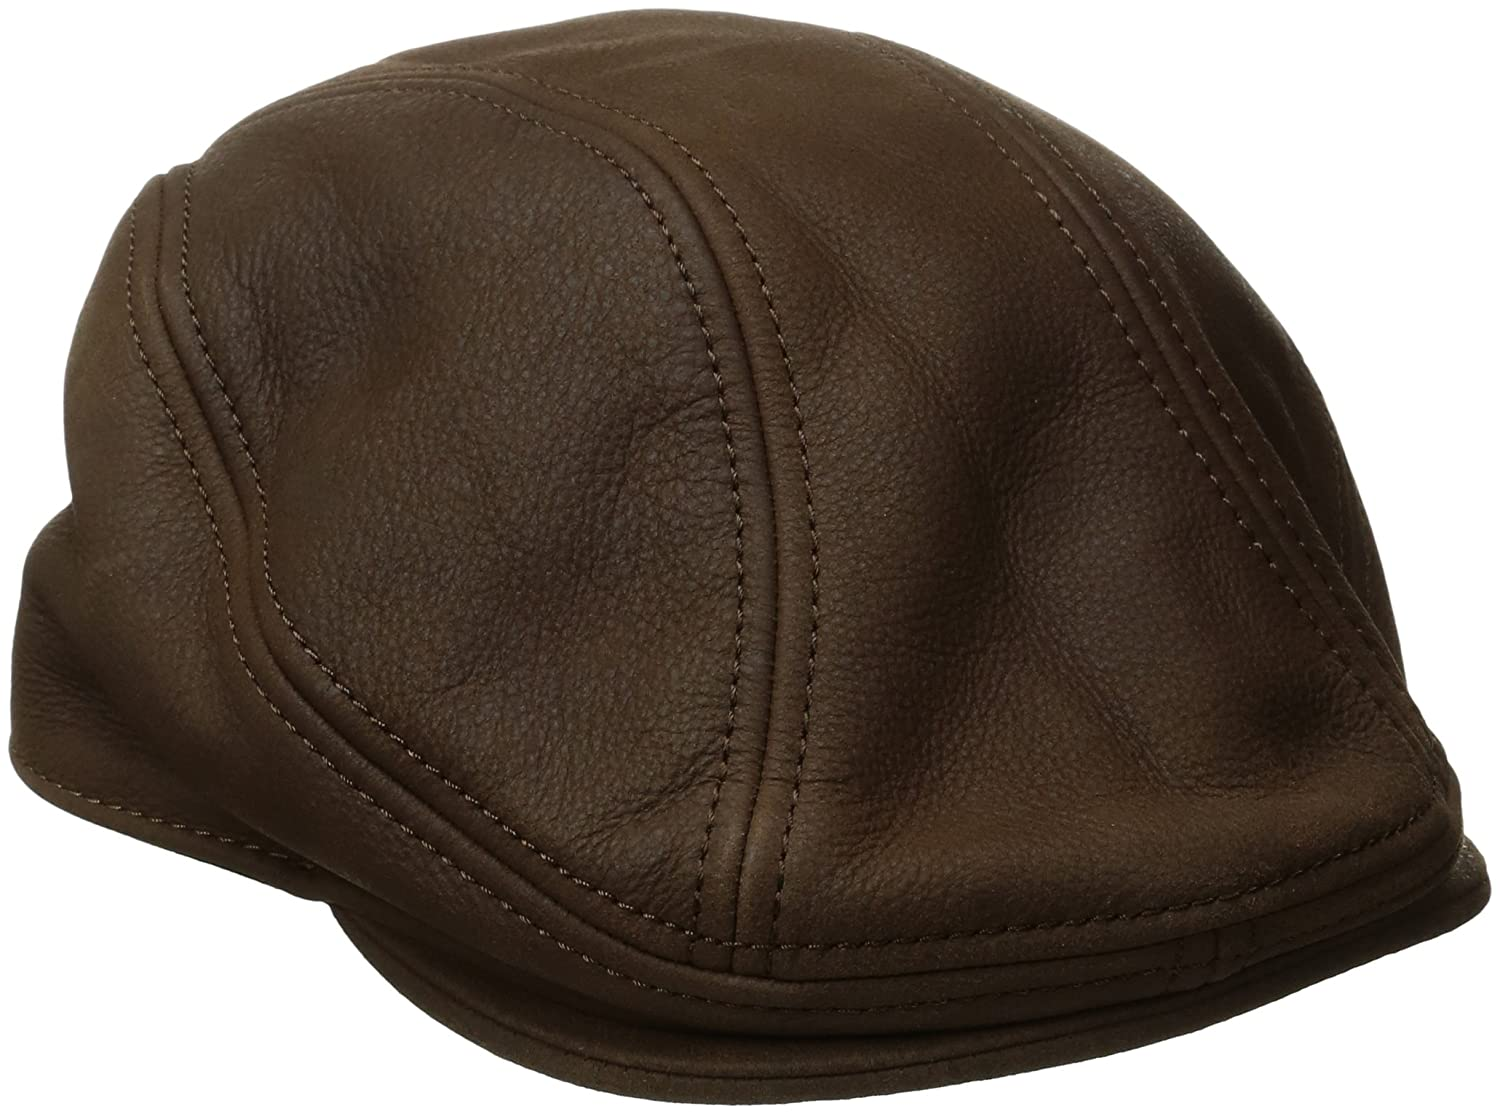 Stetson mens Oily Timber Leather Ivy Cap Brown Small/Medium STW515